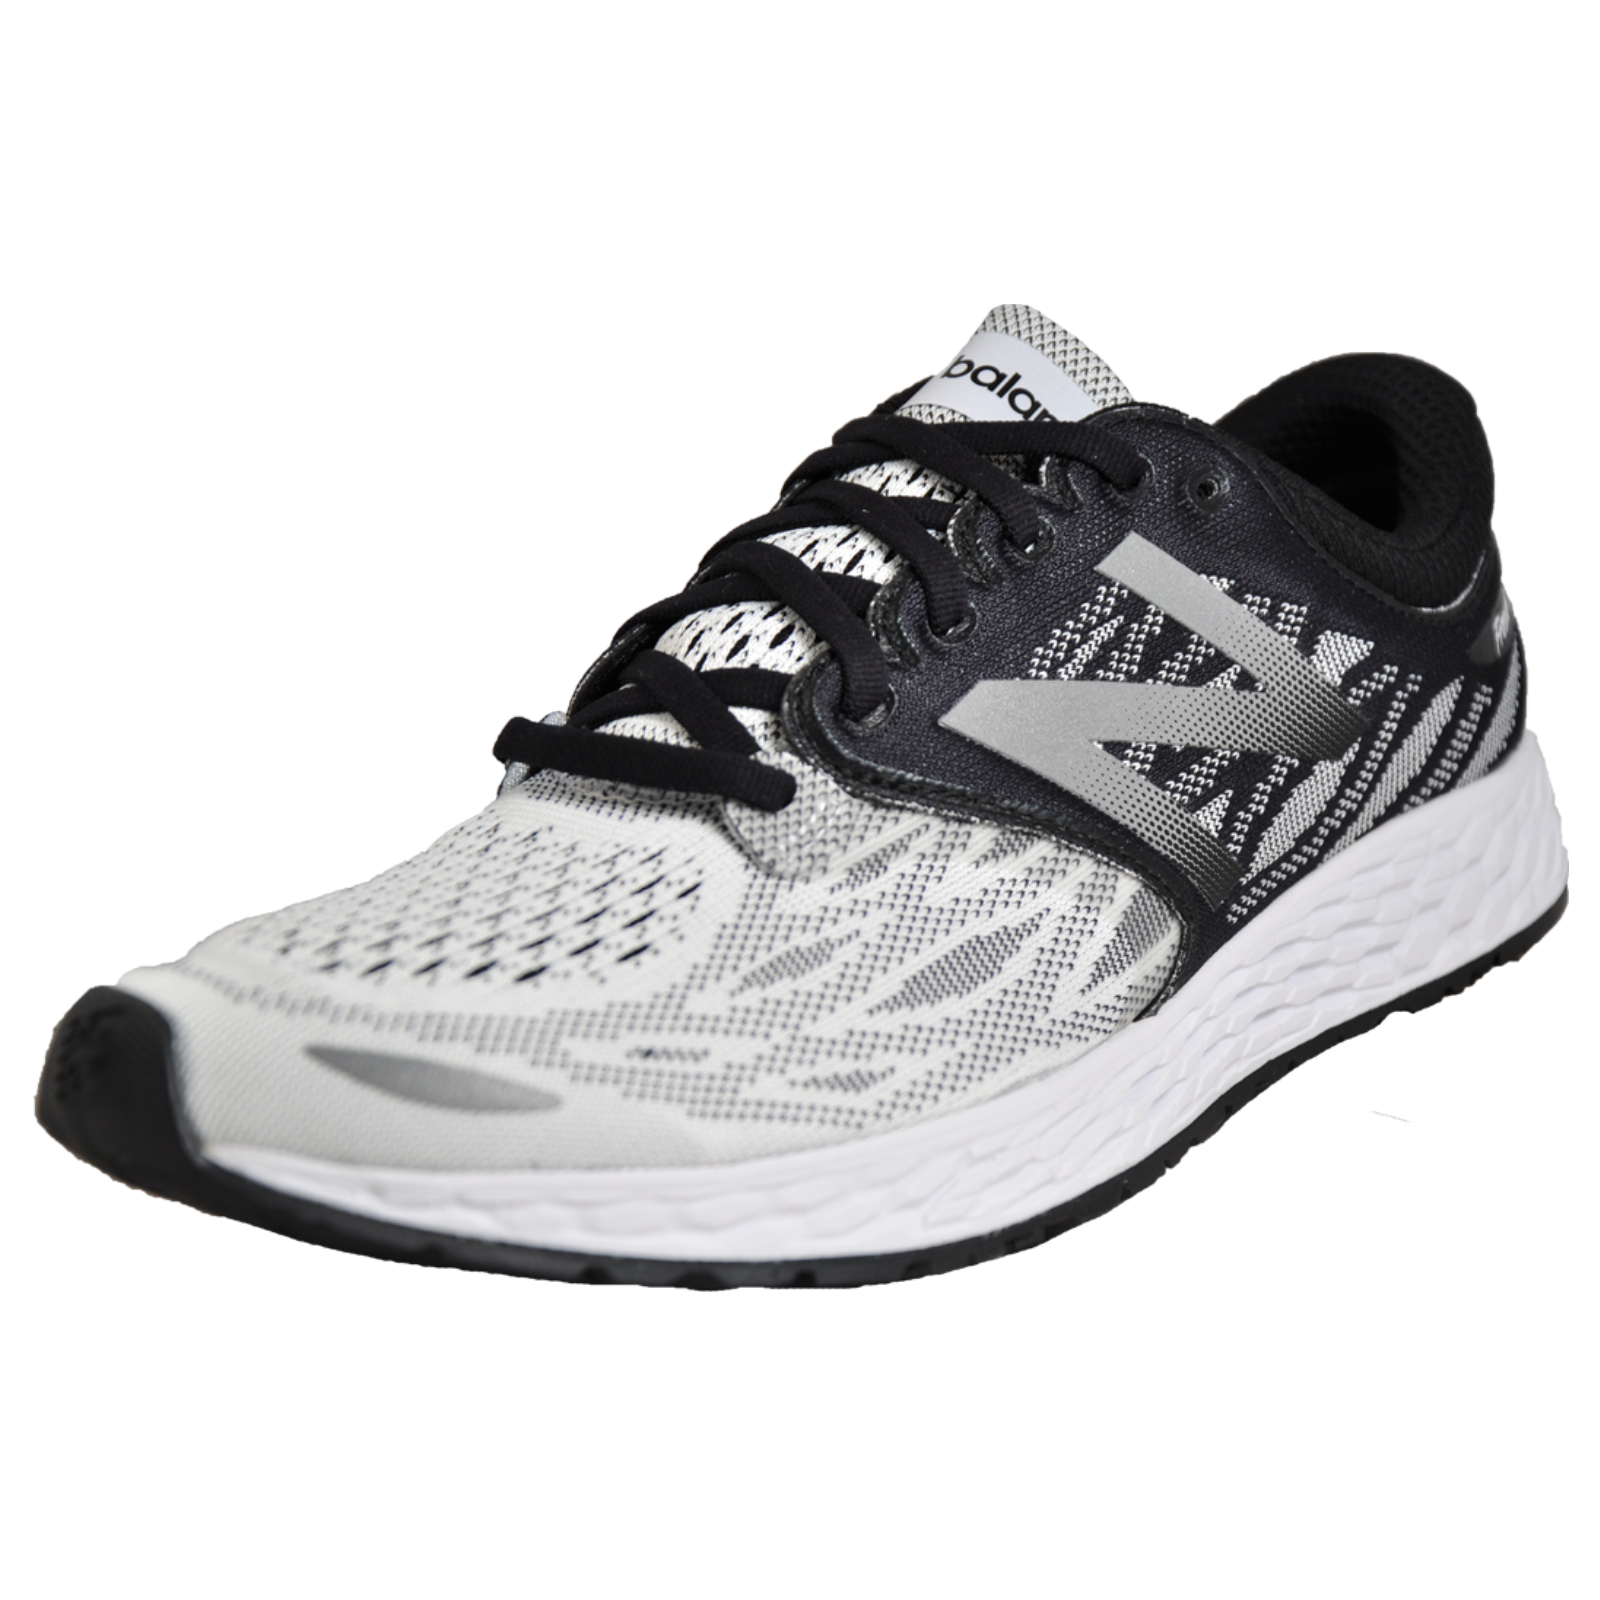 9e265596947b7 Details about New Balance Fresh Foam Zante v3 Men's Running Shoes Gym  Fitness Trainers